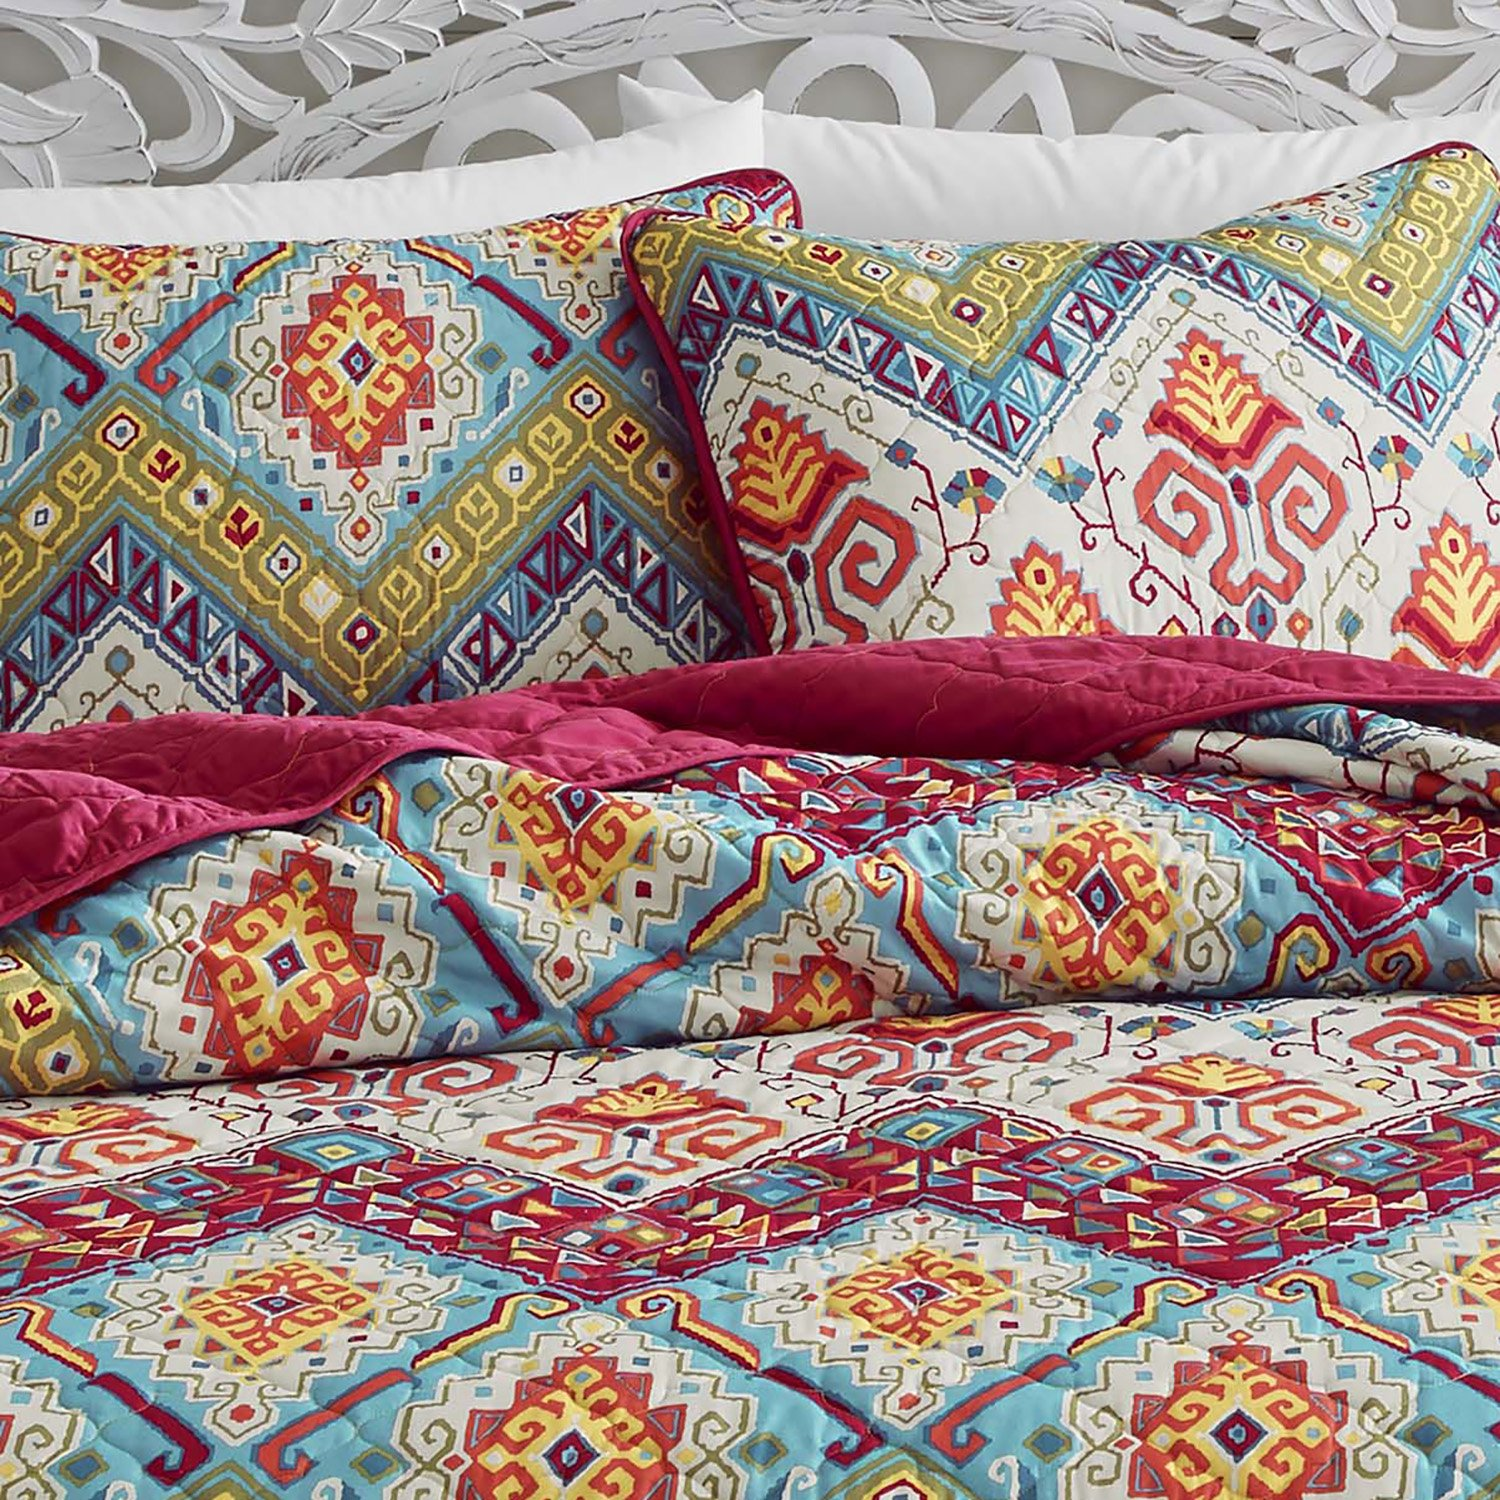 moroccan comforter monika strigel pearls new covers products lifestyle tiles and orange duvet